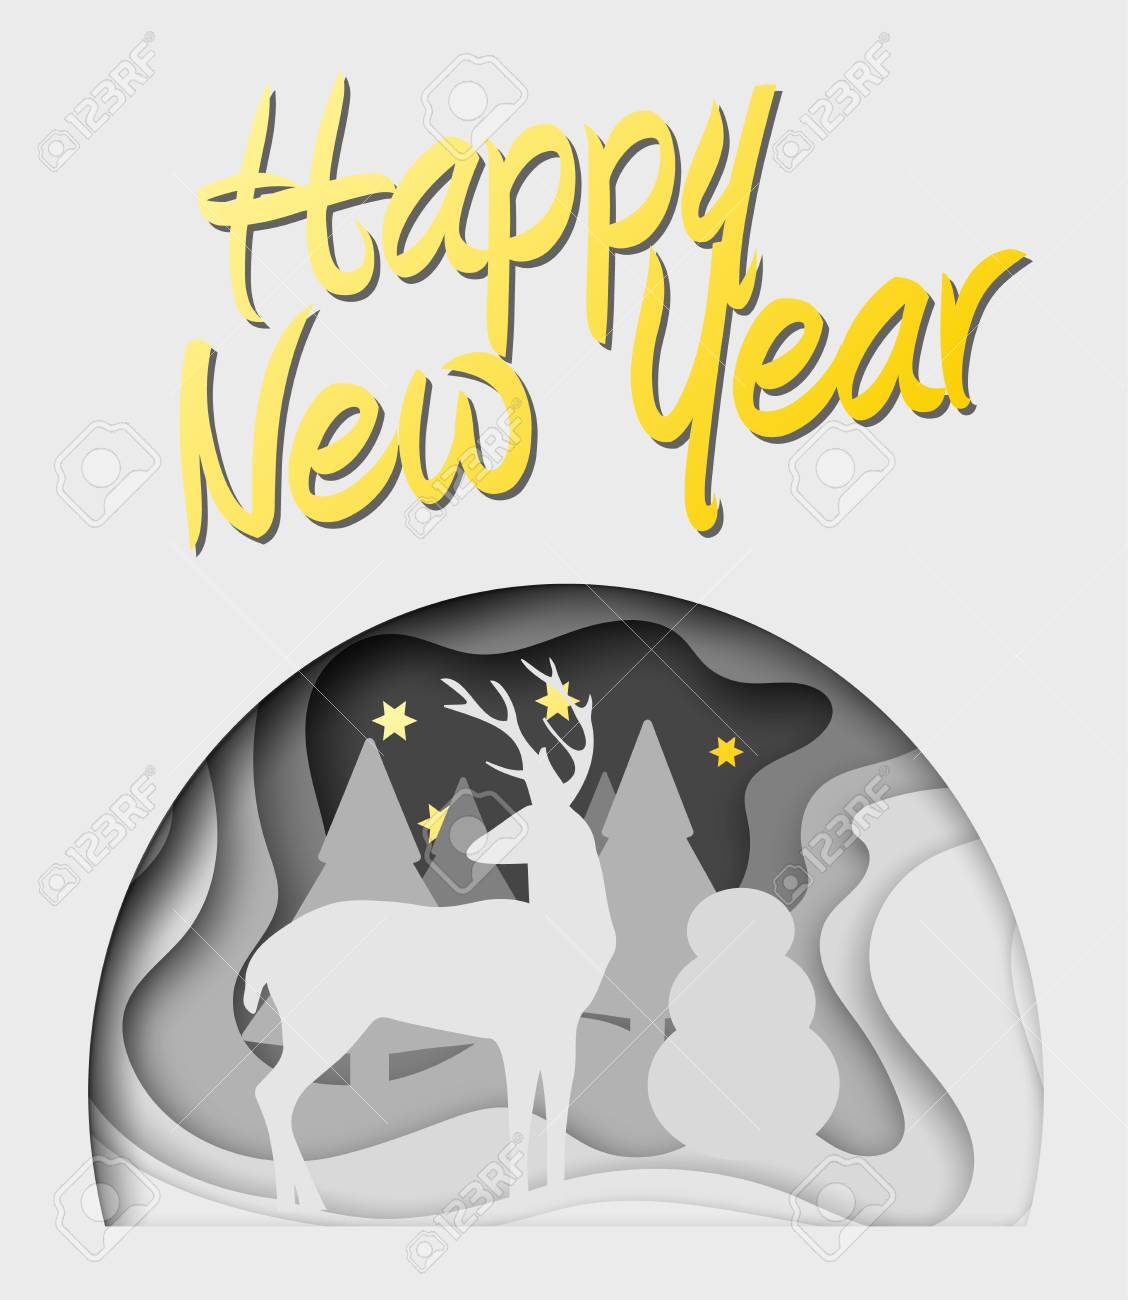 Layered Cut Out Paper Happy New Year Postcard With Trees Deer Stars Vector